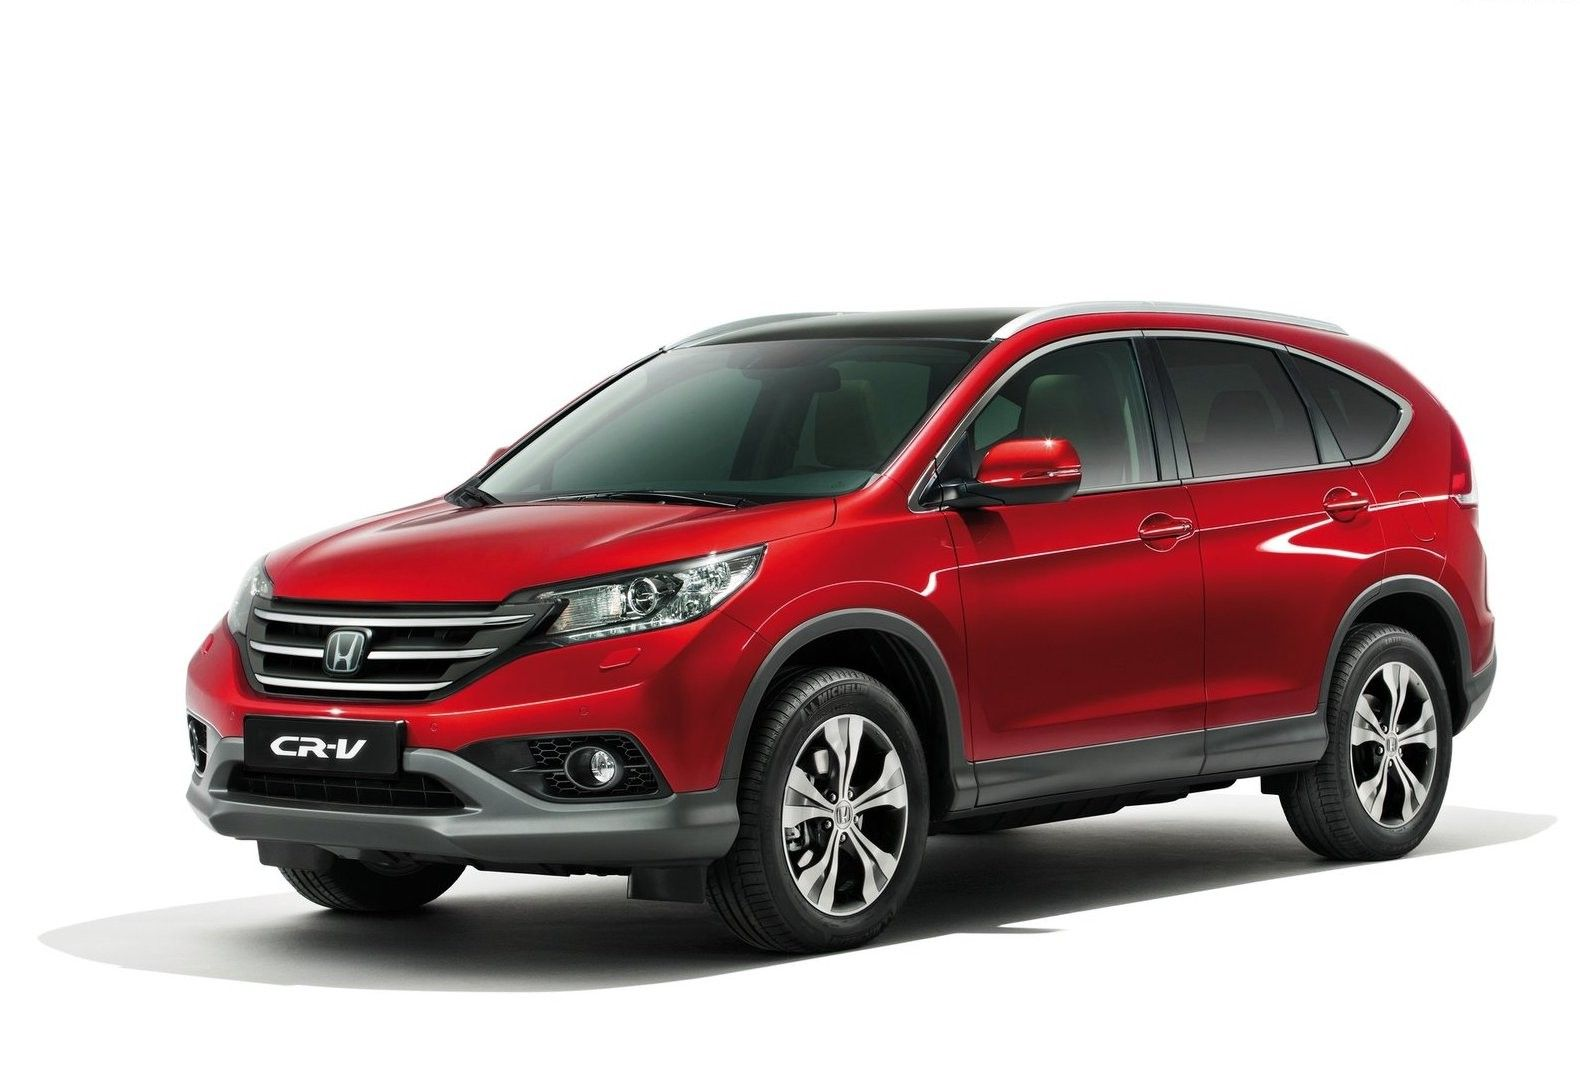 When it is concerned about best compact suv then three competitors will come to the front they are honda cr v kia sportage and skoda yeti as a new car